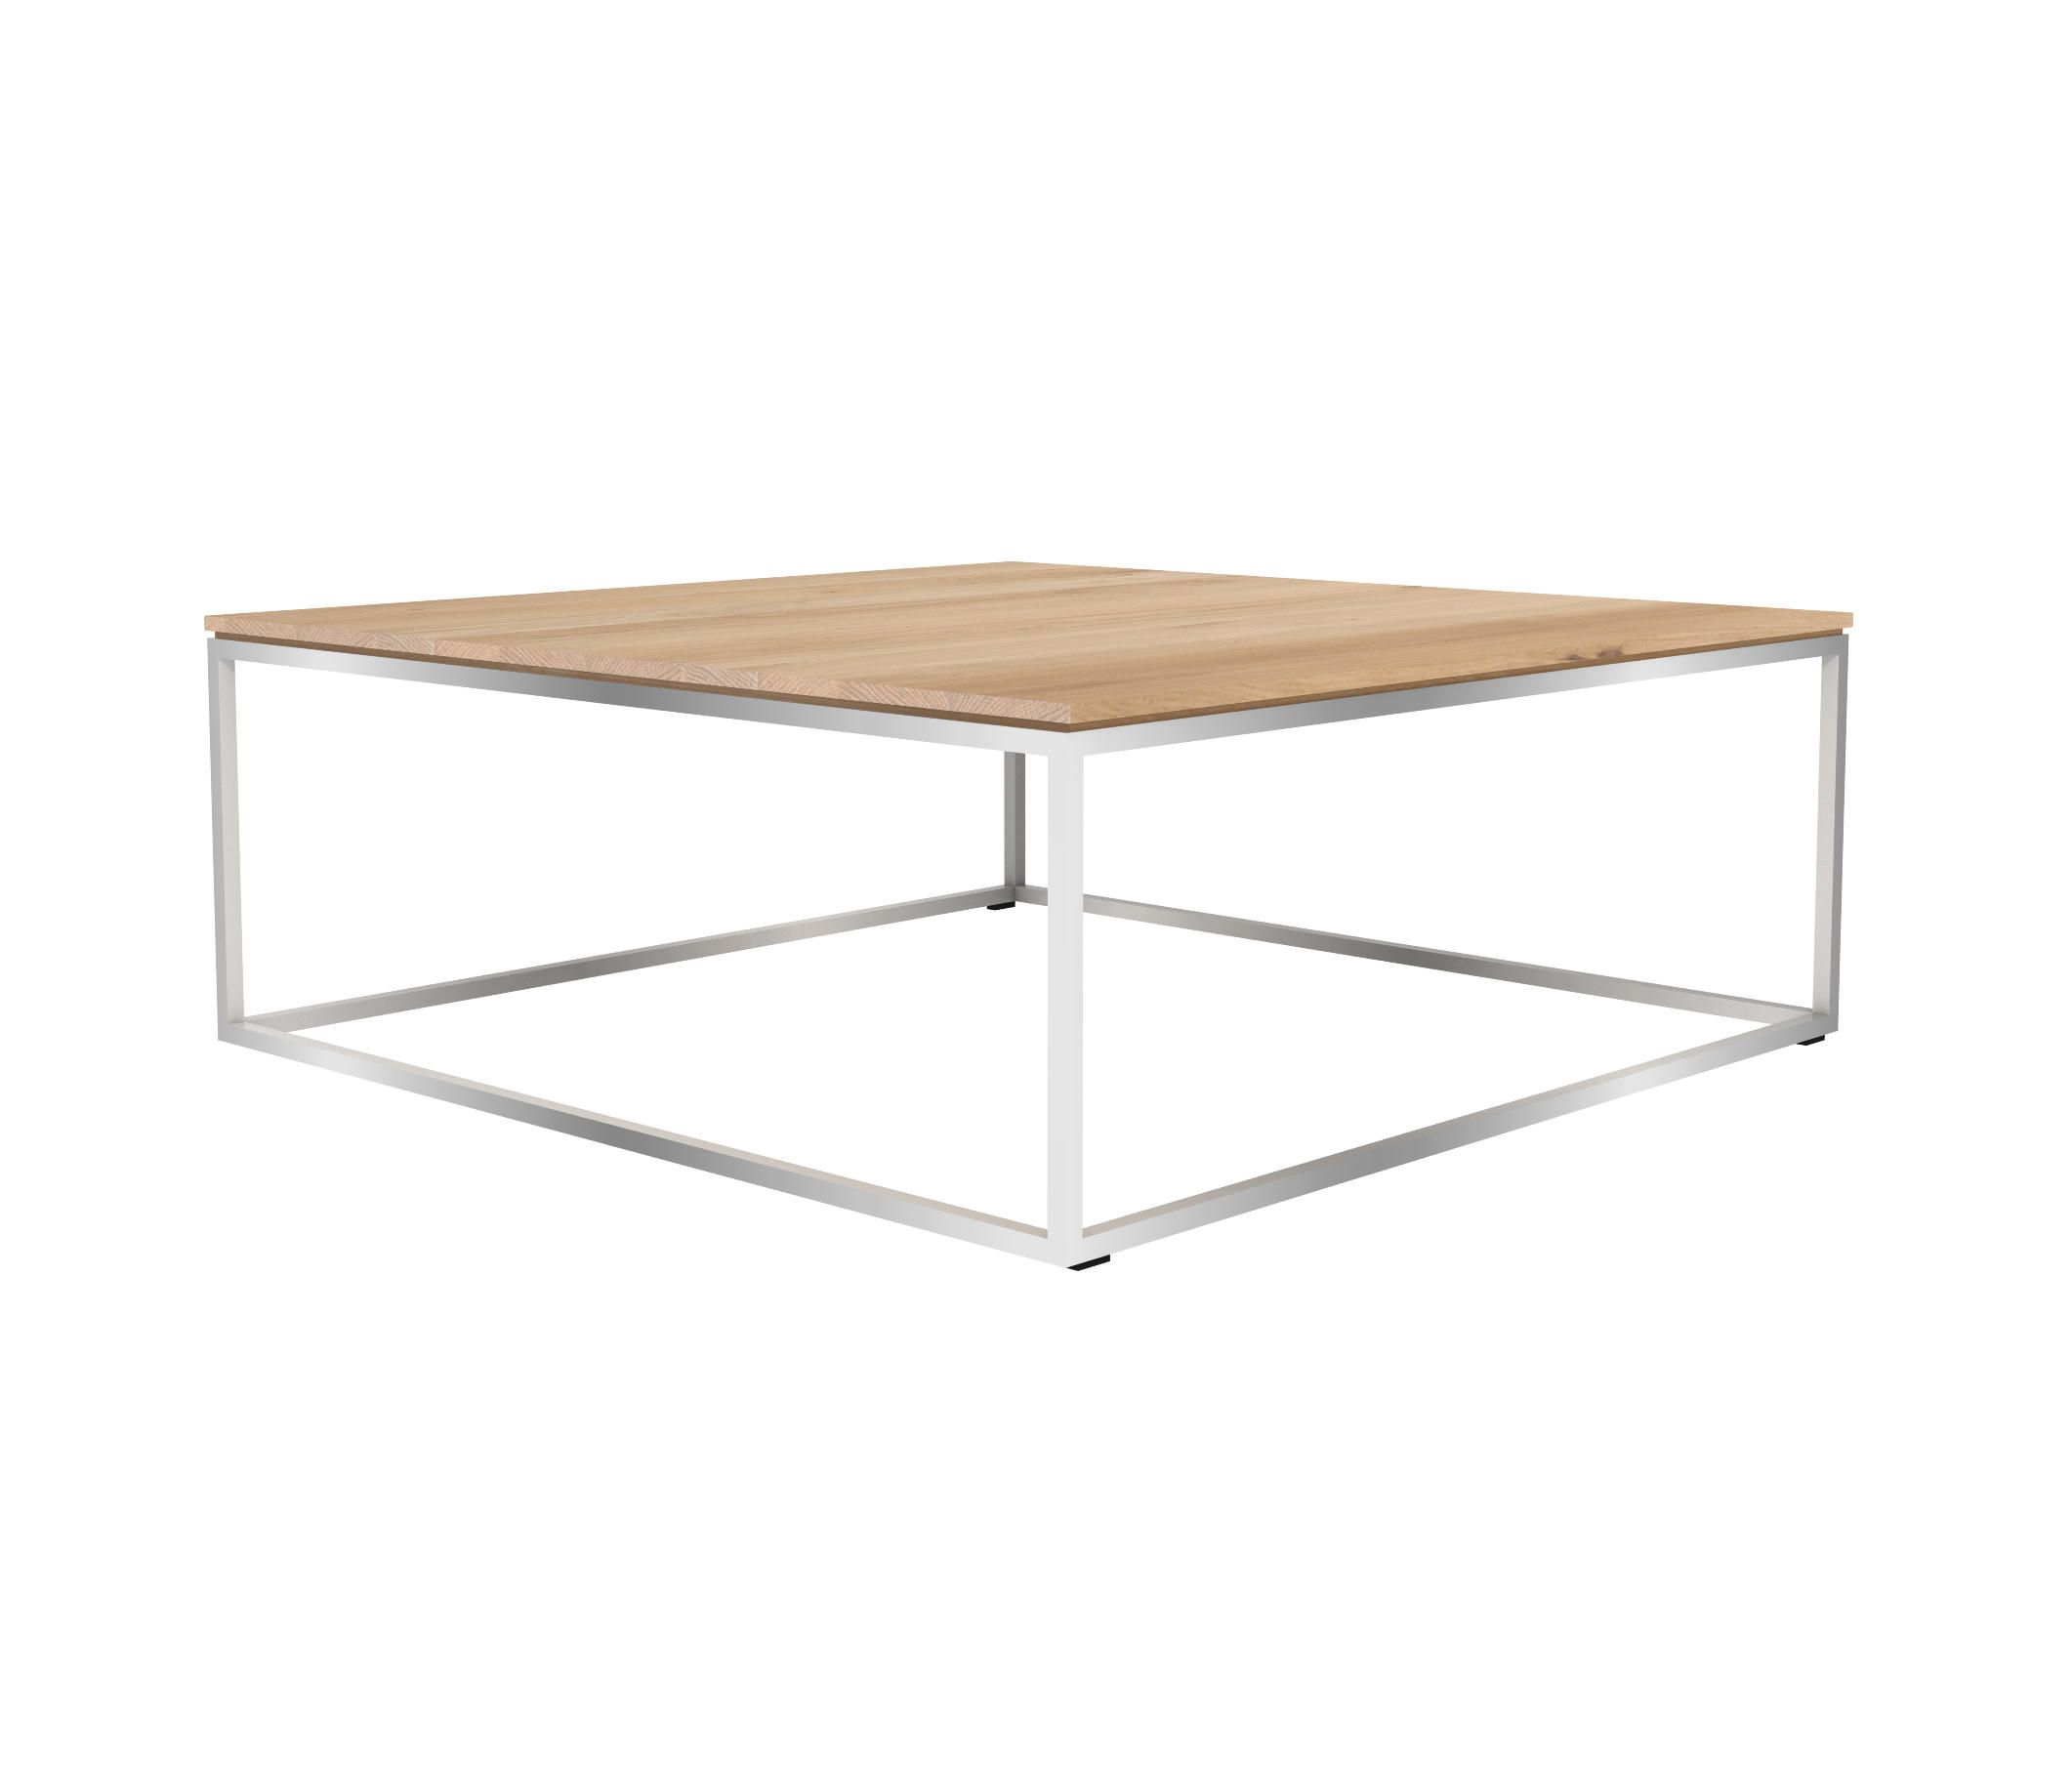 - OAK THIN COFFEE TABLE - Designer Lounge Tables From Ethnicraft